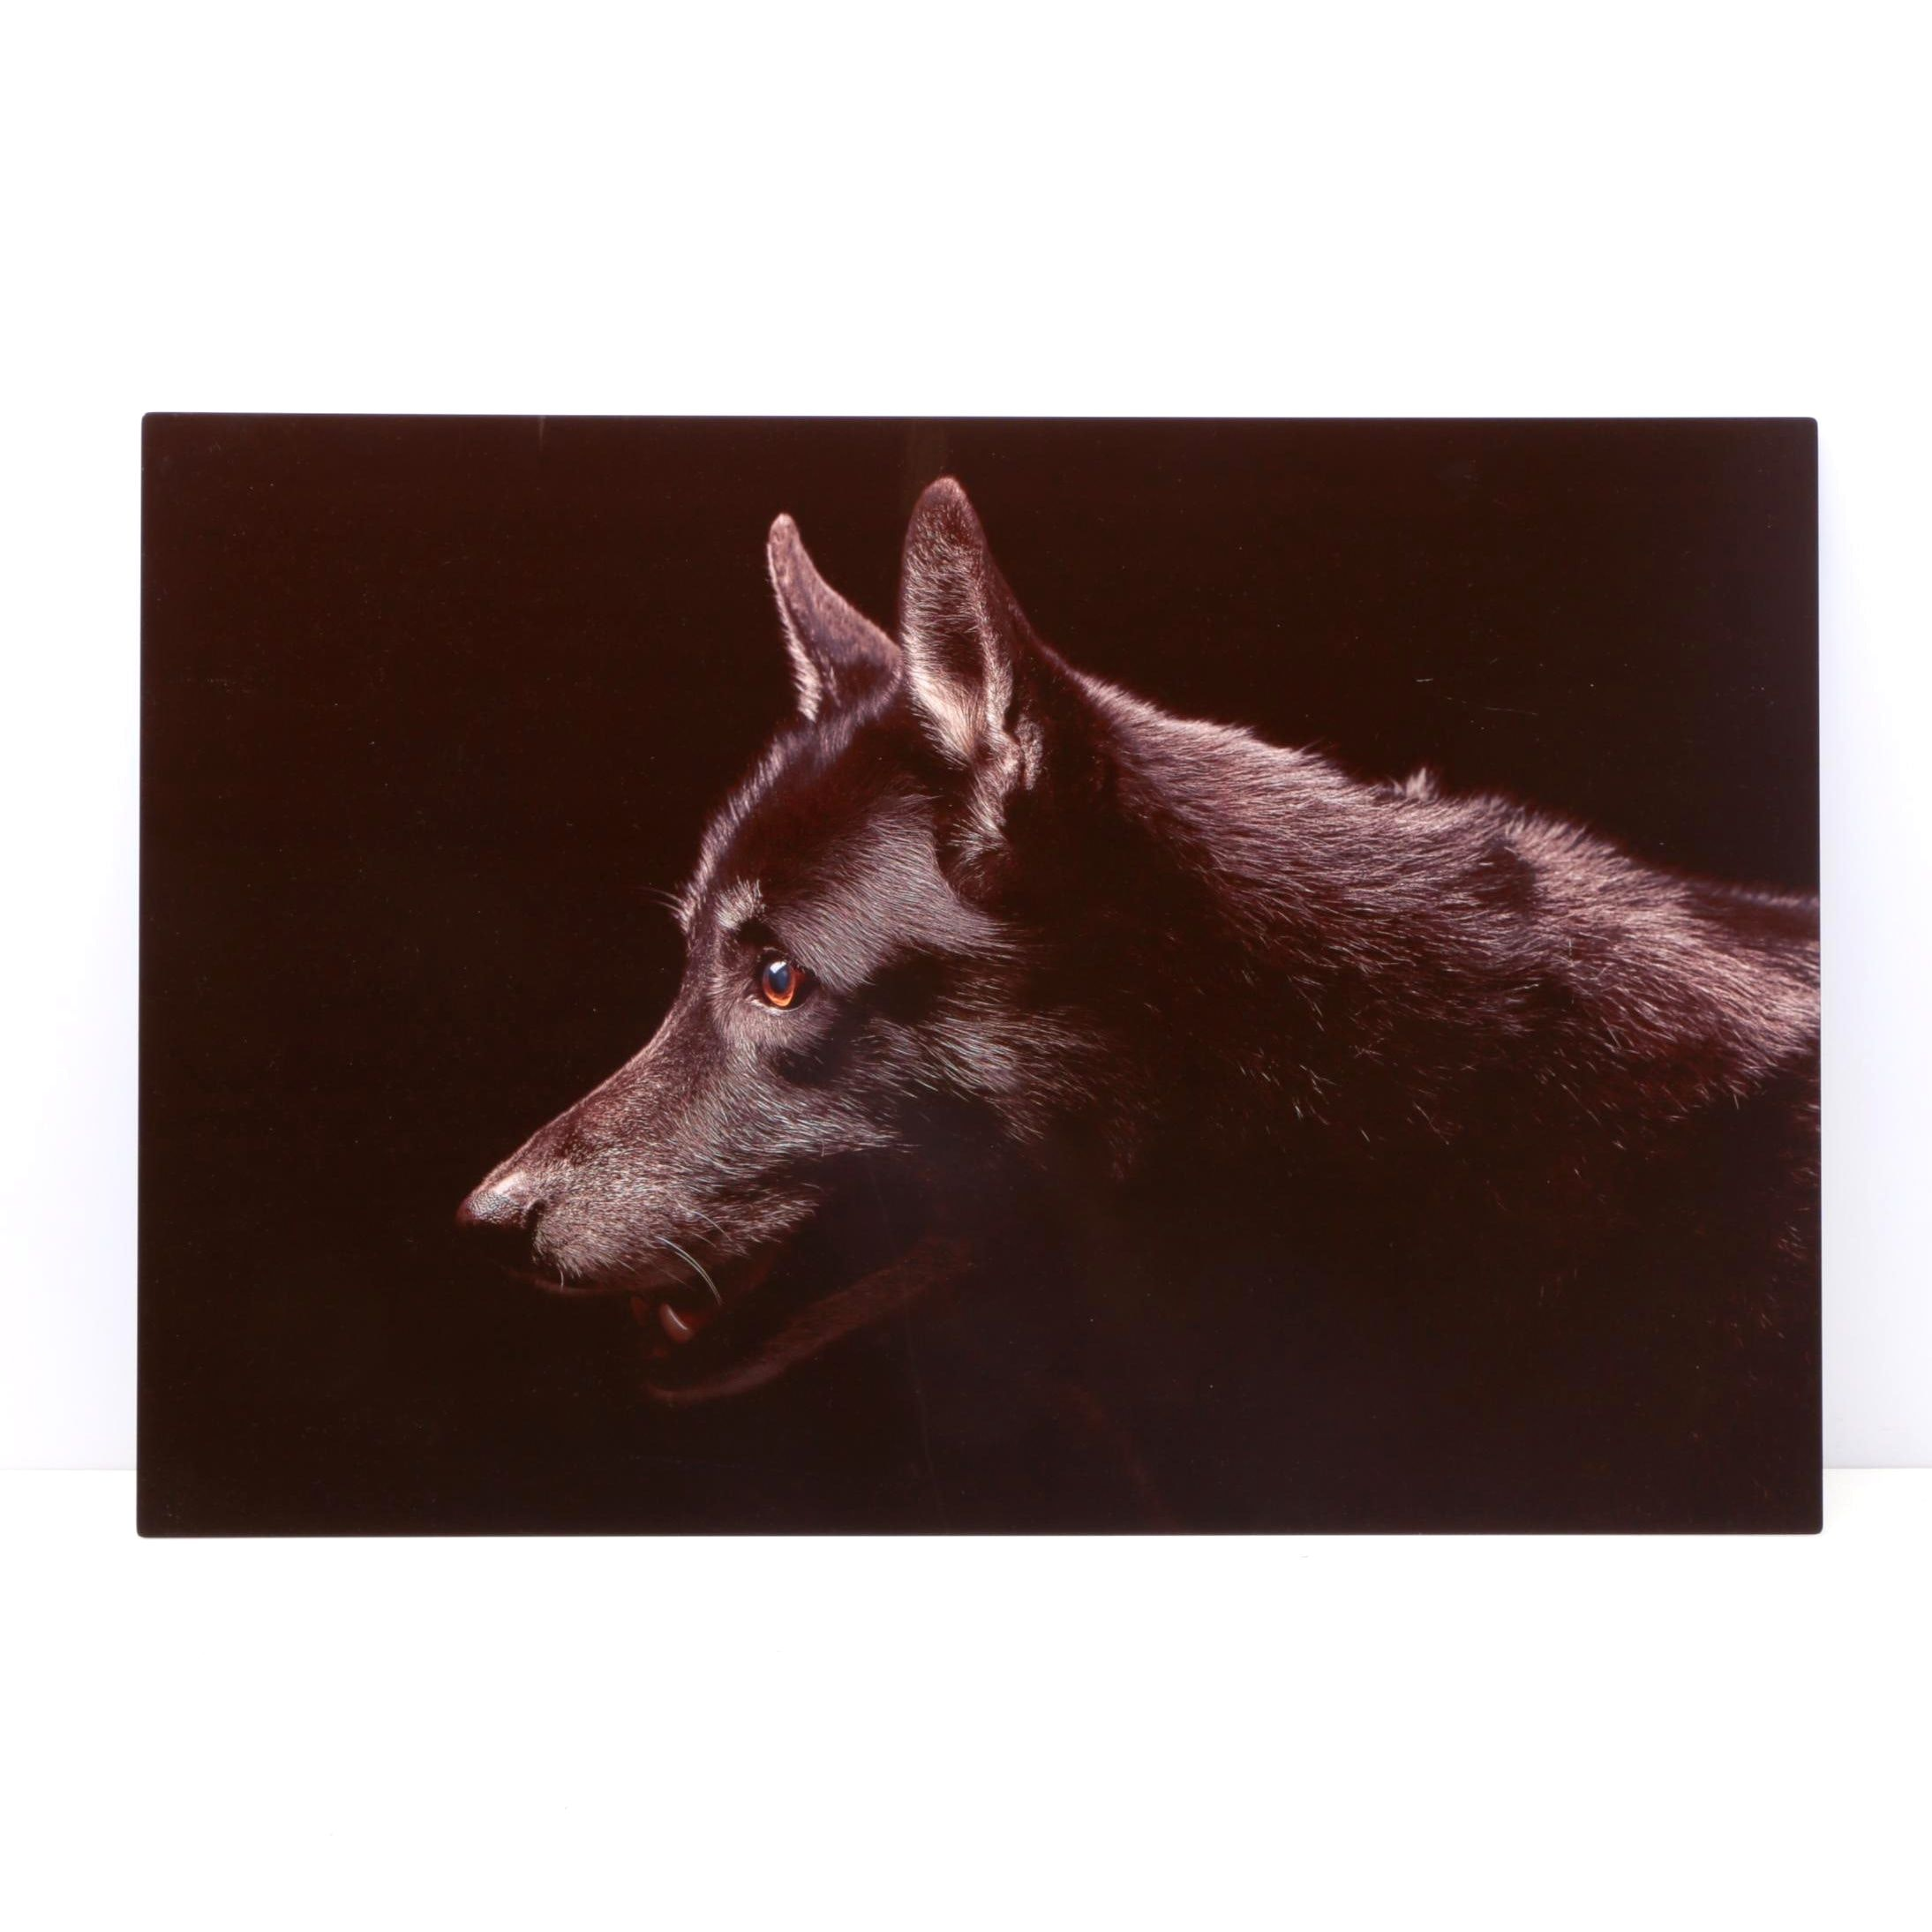 Giclee Print on Aluminum of a Dog